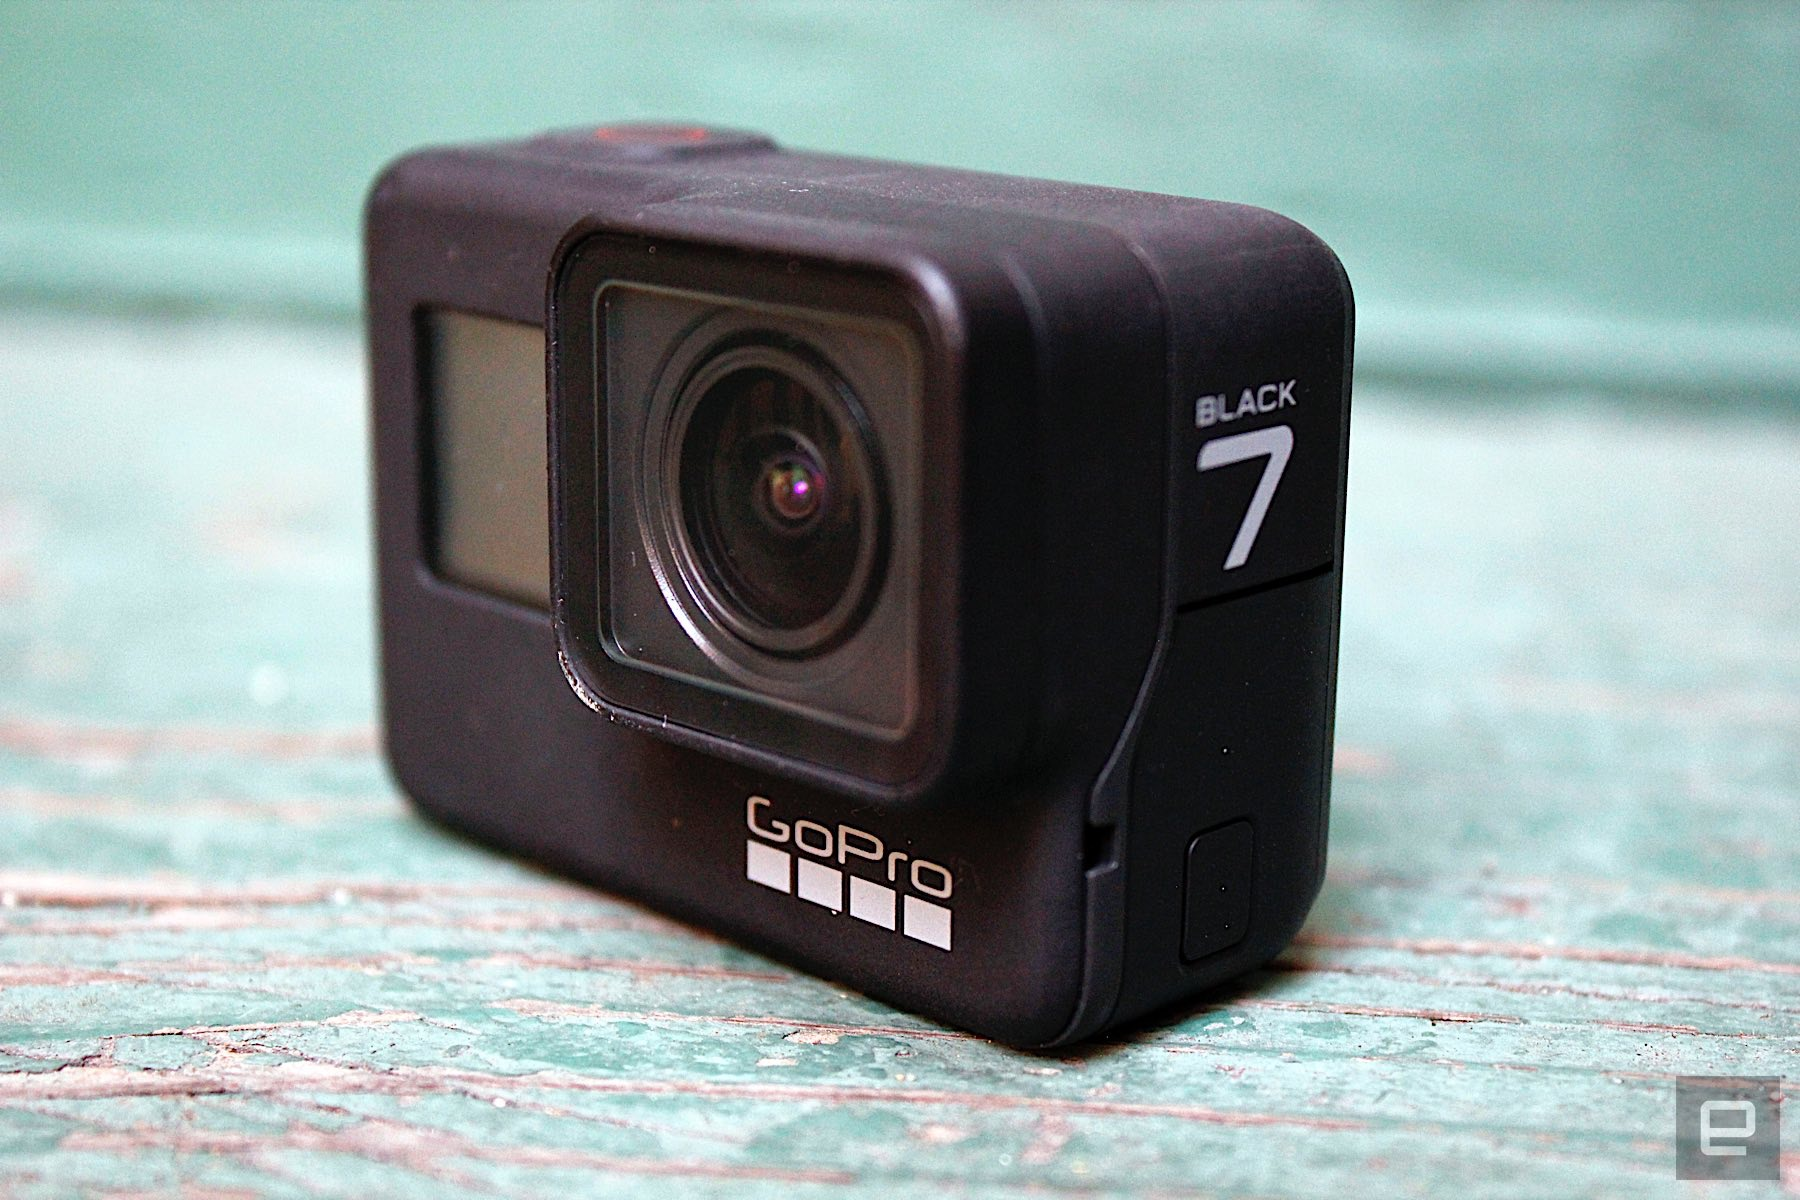 GoPro Hero 7 Black review: An action camera for the social